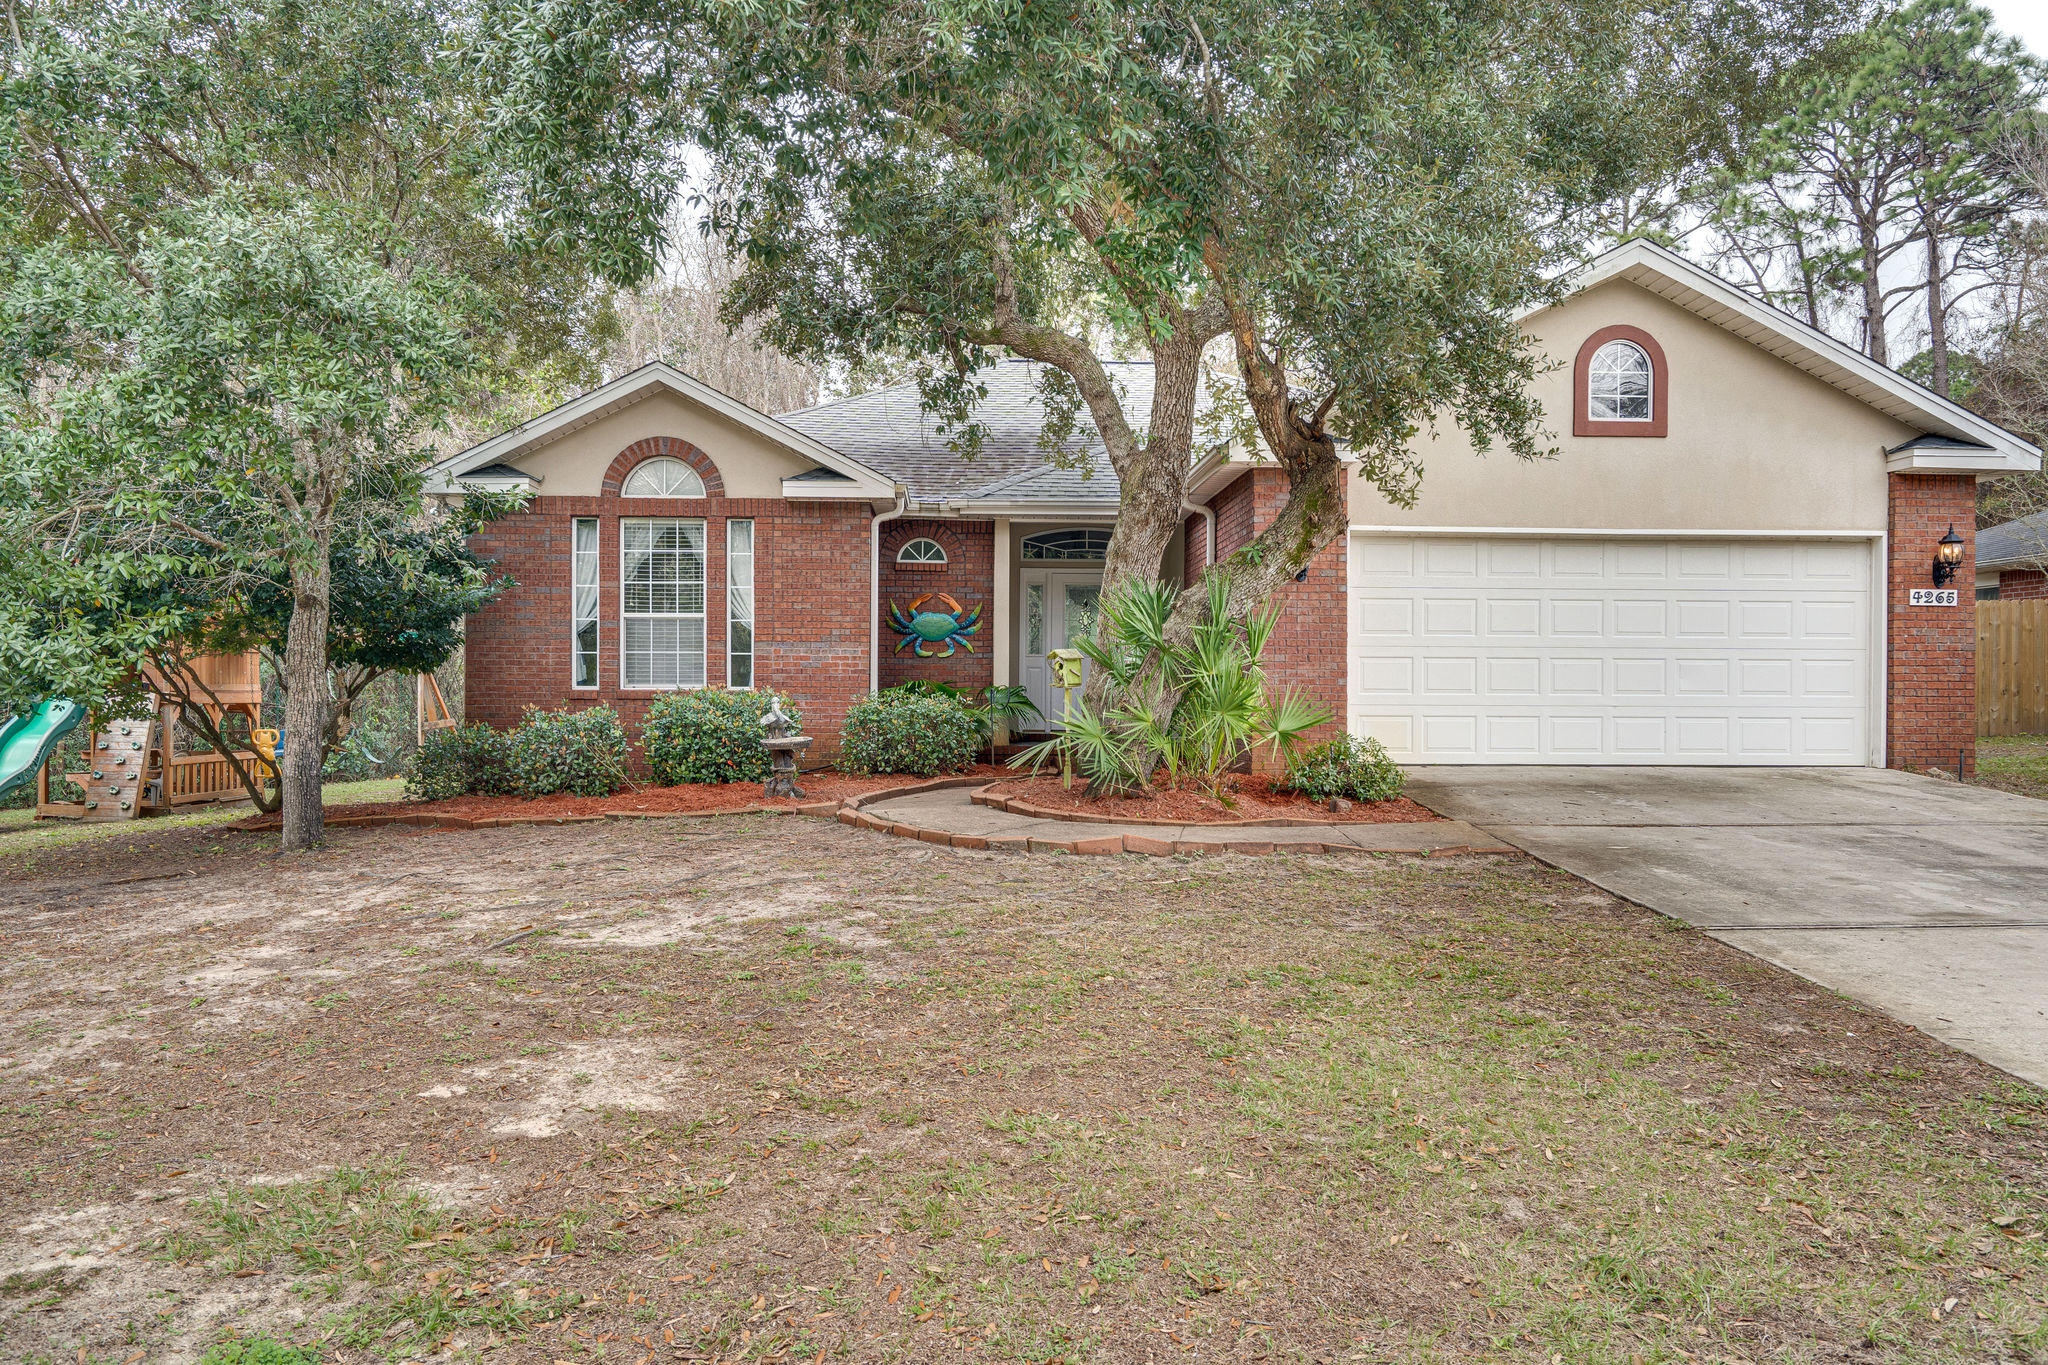 4265  Shadow Lane, Niceville in Okaloosa County, FL 32578 Home for Sale